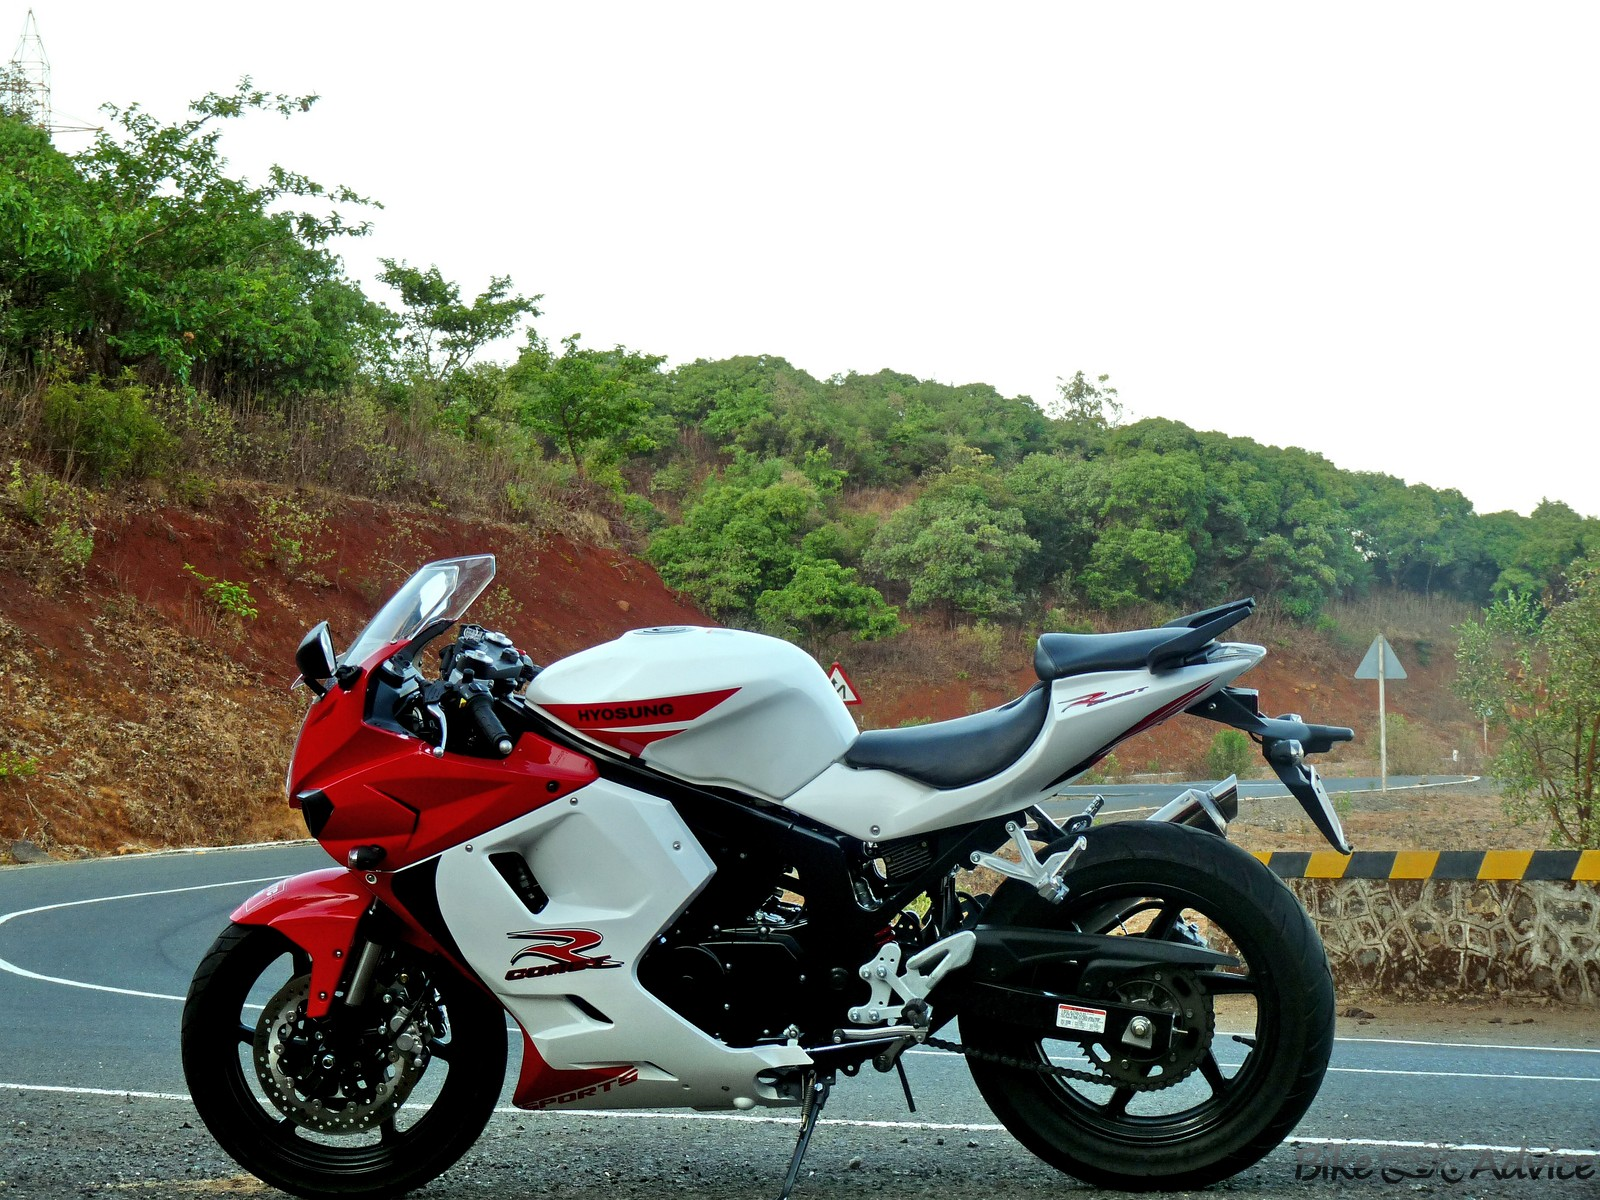 2012 Hyosung GT250R India Review and Test Ride